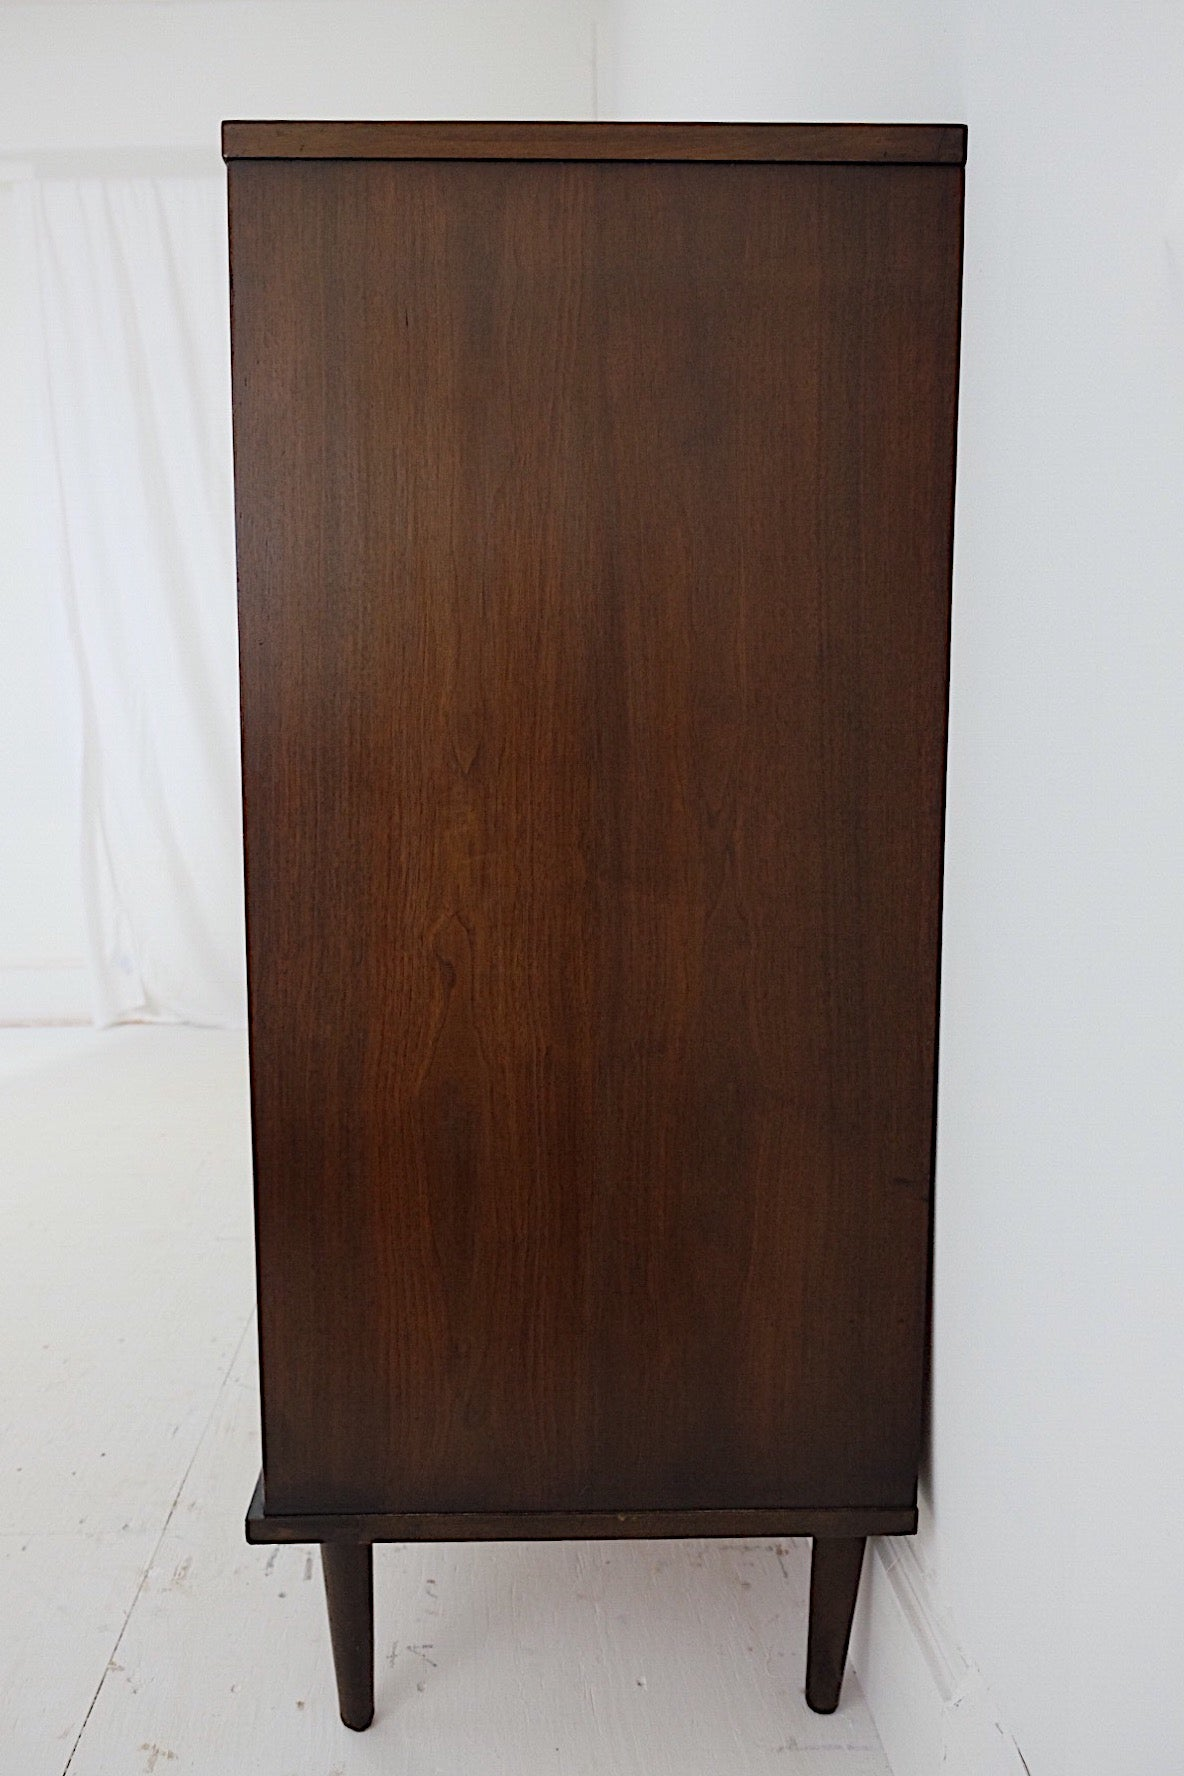 Tall Dark Handsome Mid Century Modern Dresser New Cherry Veneer Top Curved Fronts